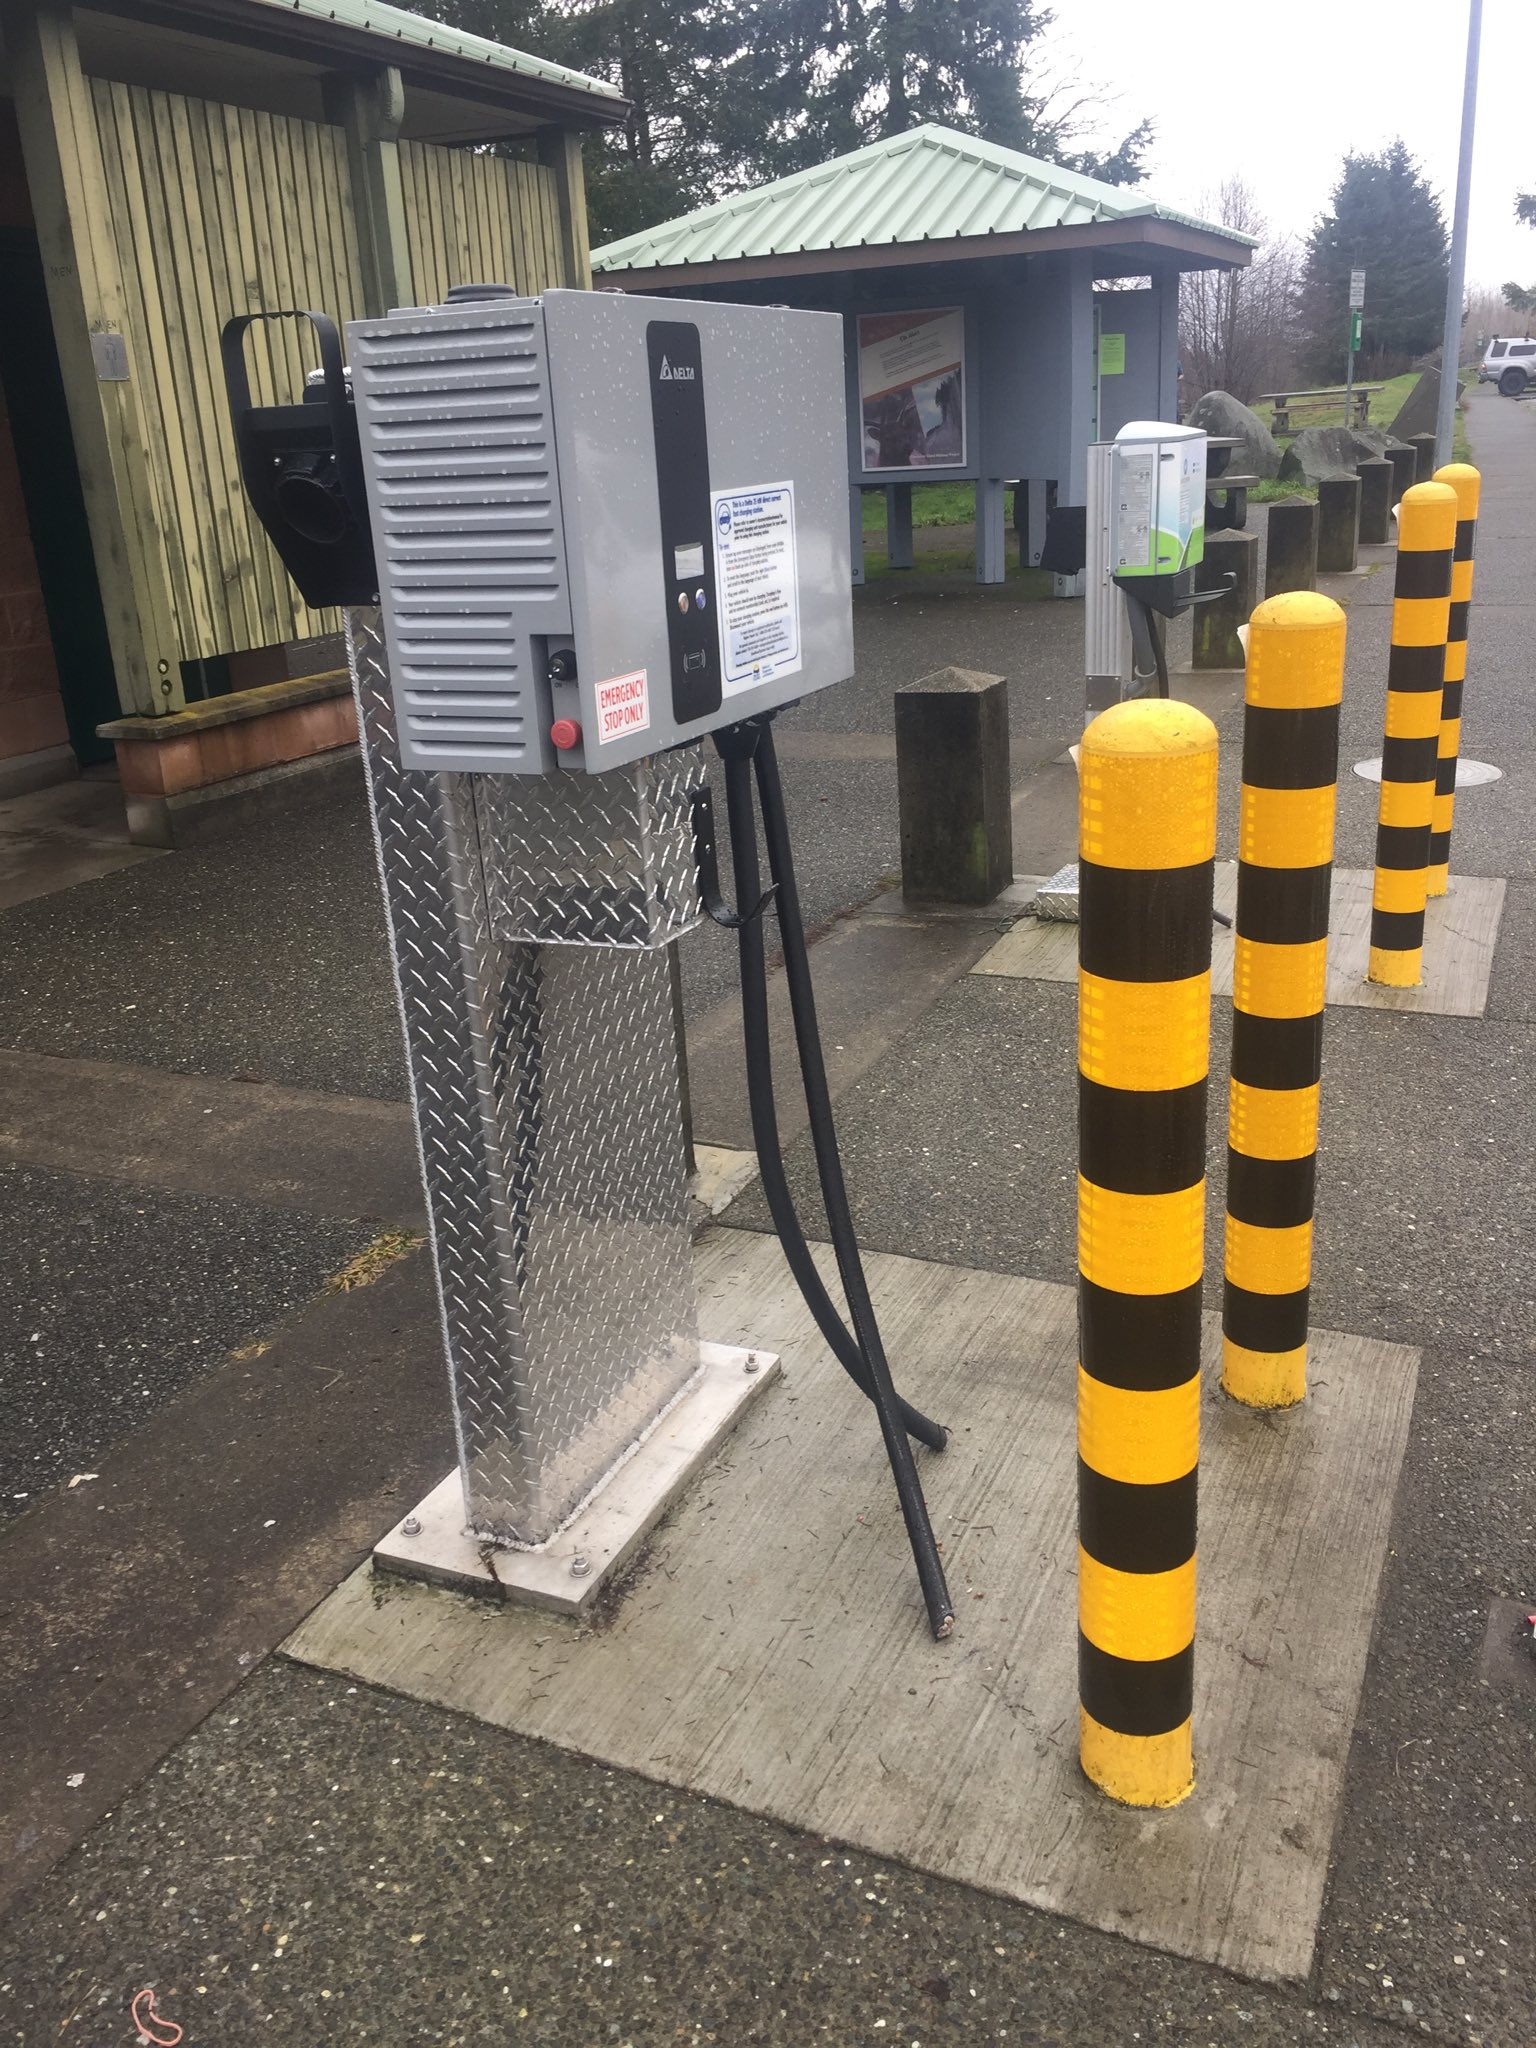 Buckley Bay EV chargers vandalized